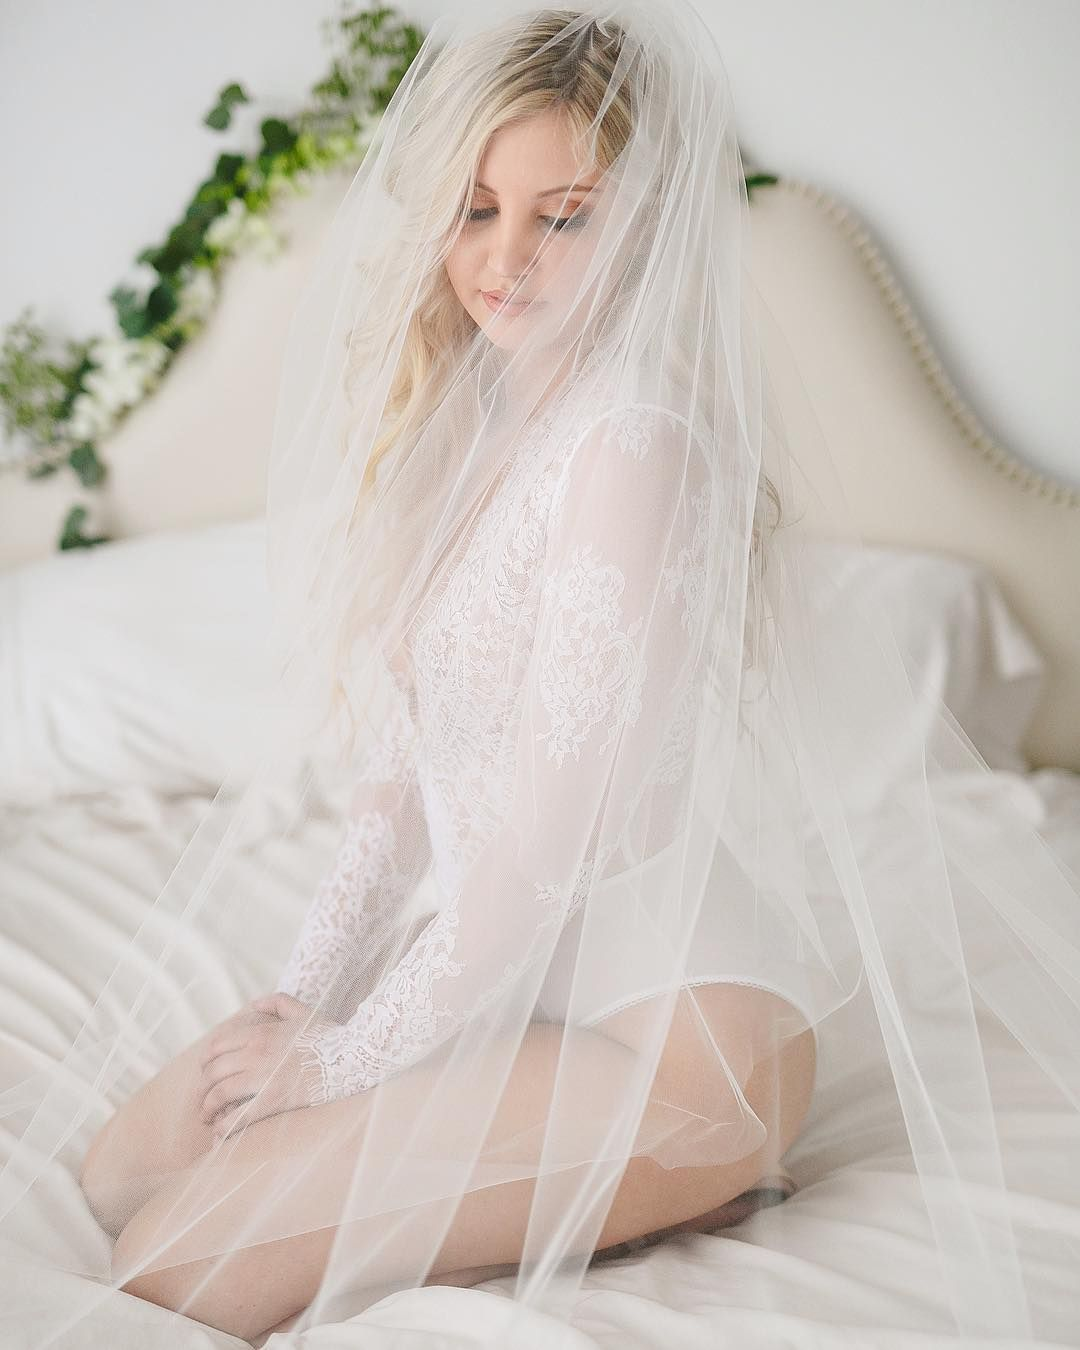 tbt to this dreamy bridal boudoir shoot! Someone asked me